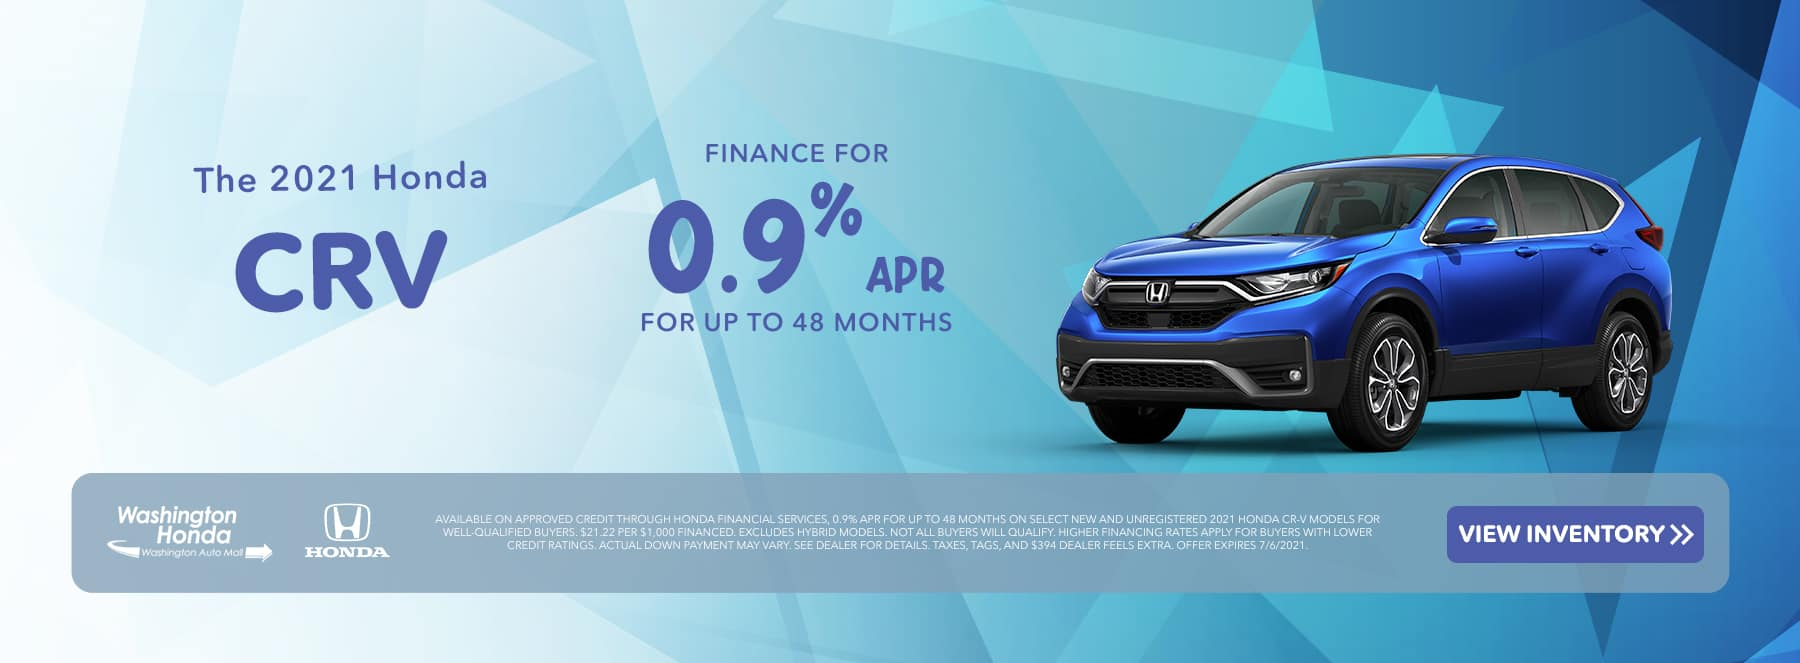 The 2021 Honda CR-V Finance for 0.9% for up to 48 Months